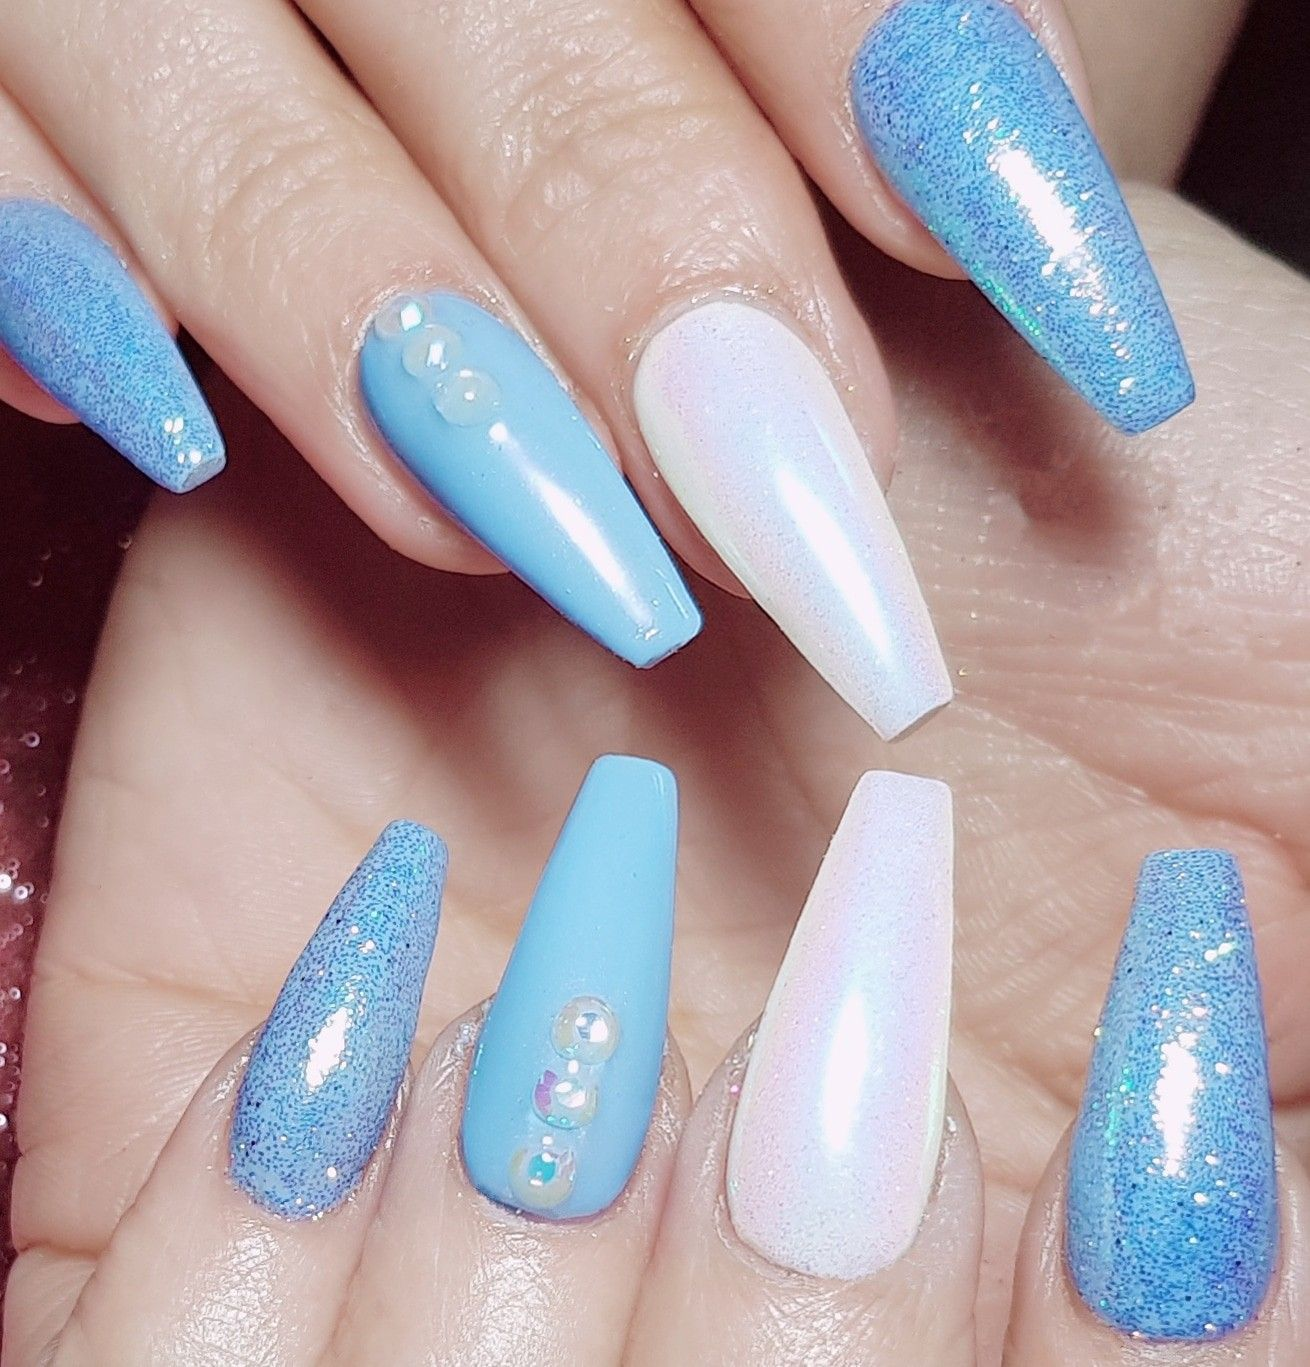 Sky Blue And White Acrylic Sculpted Nails With Glitter And Gems Blue Acrylic Nails Blue Glitter Nails Sky Blue Nails